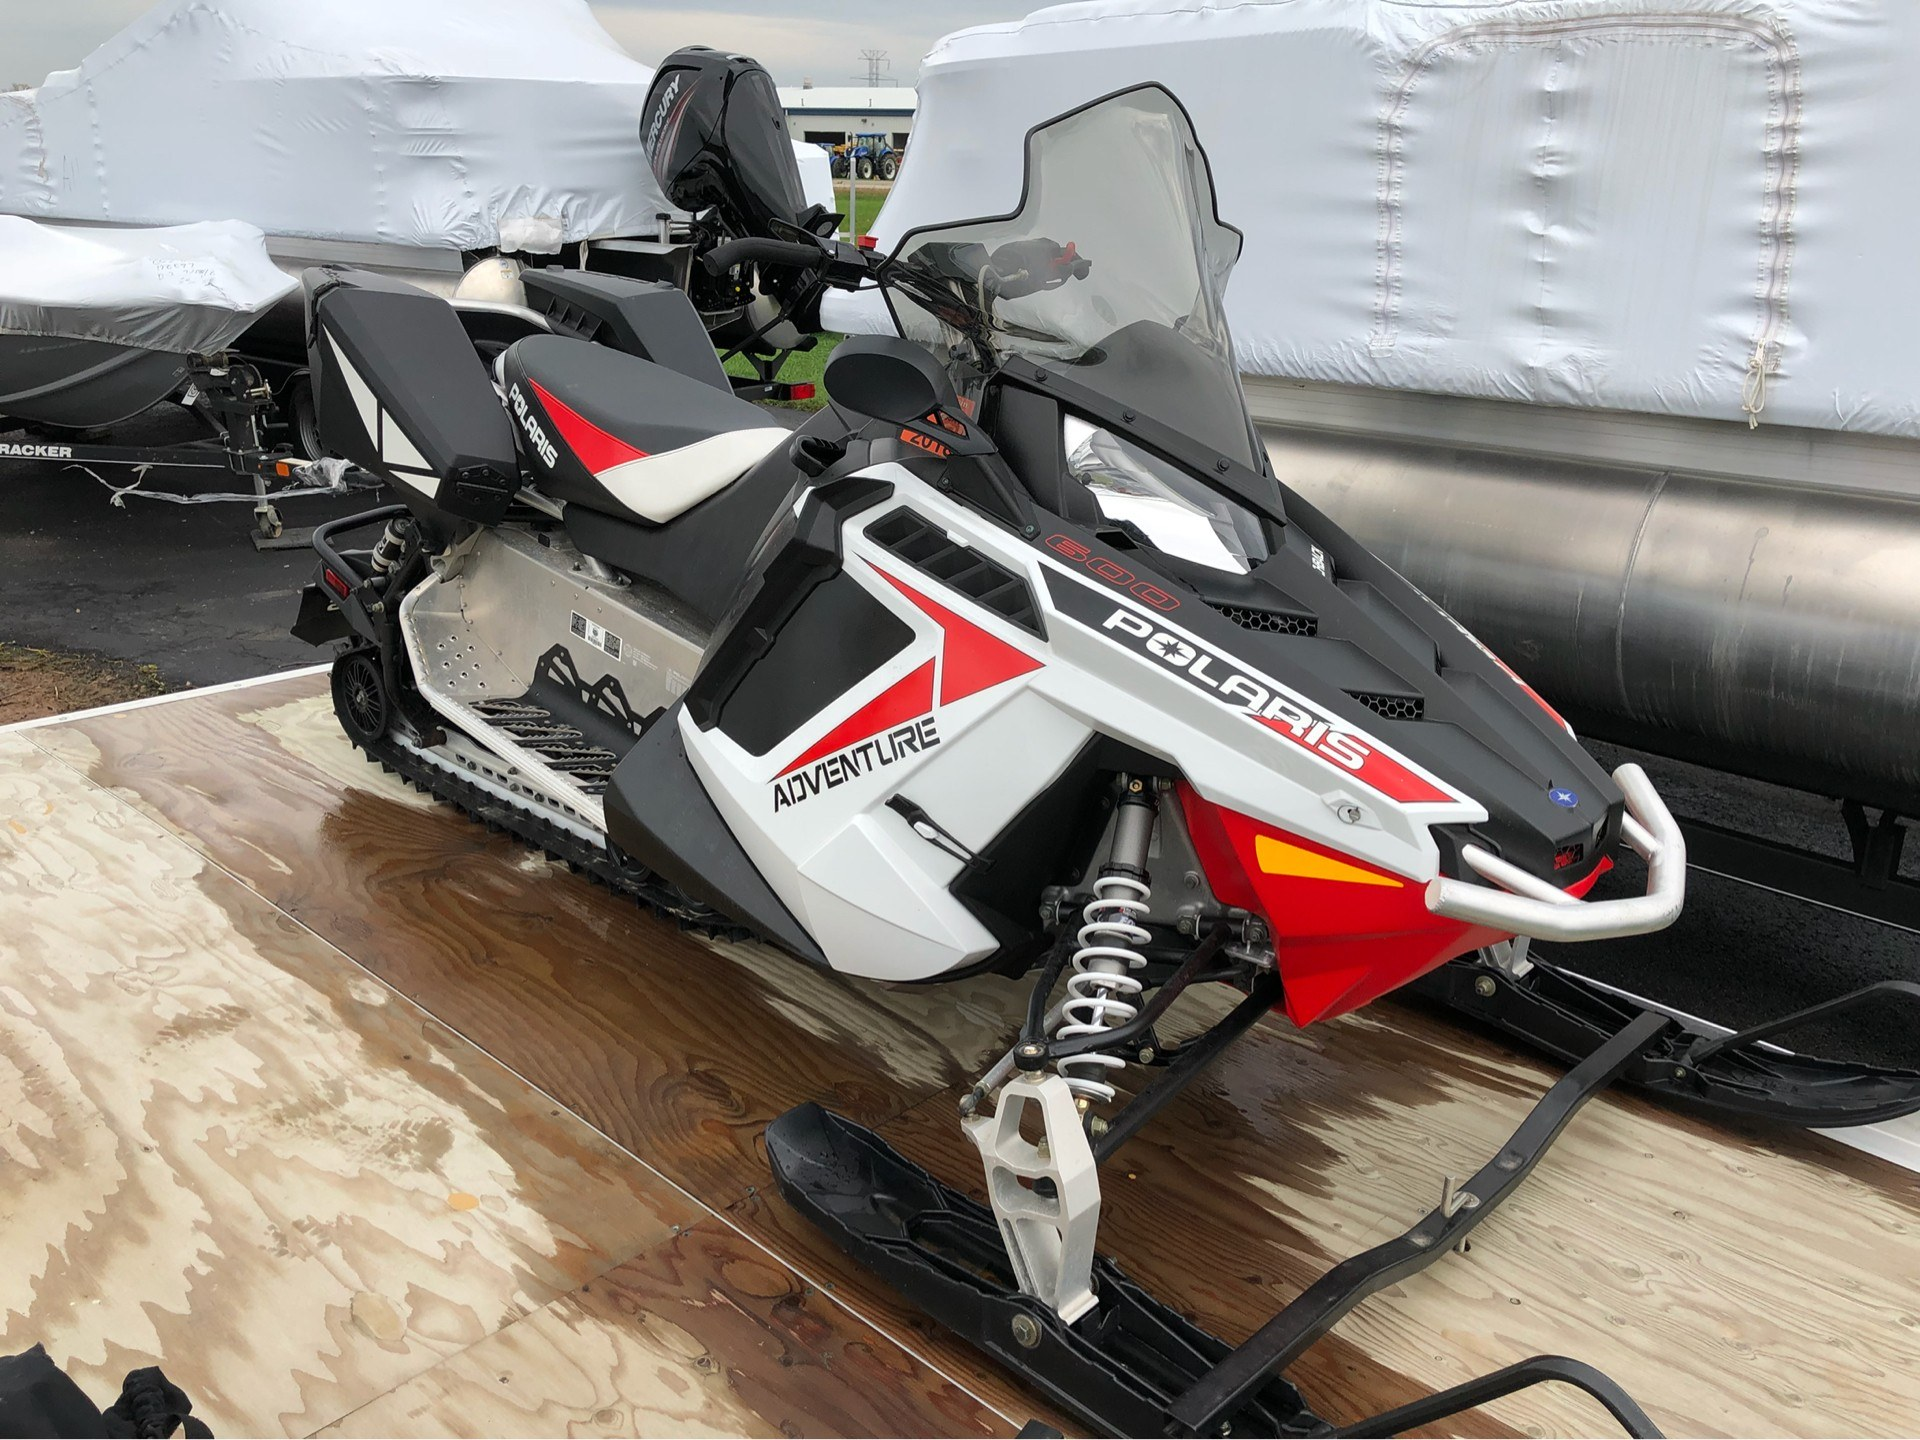 2014 Polaris 600 Switchback Adventure for sale 16310